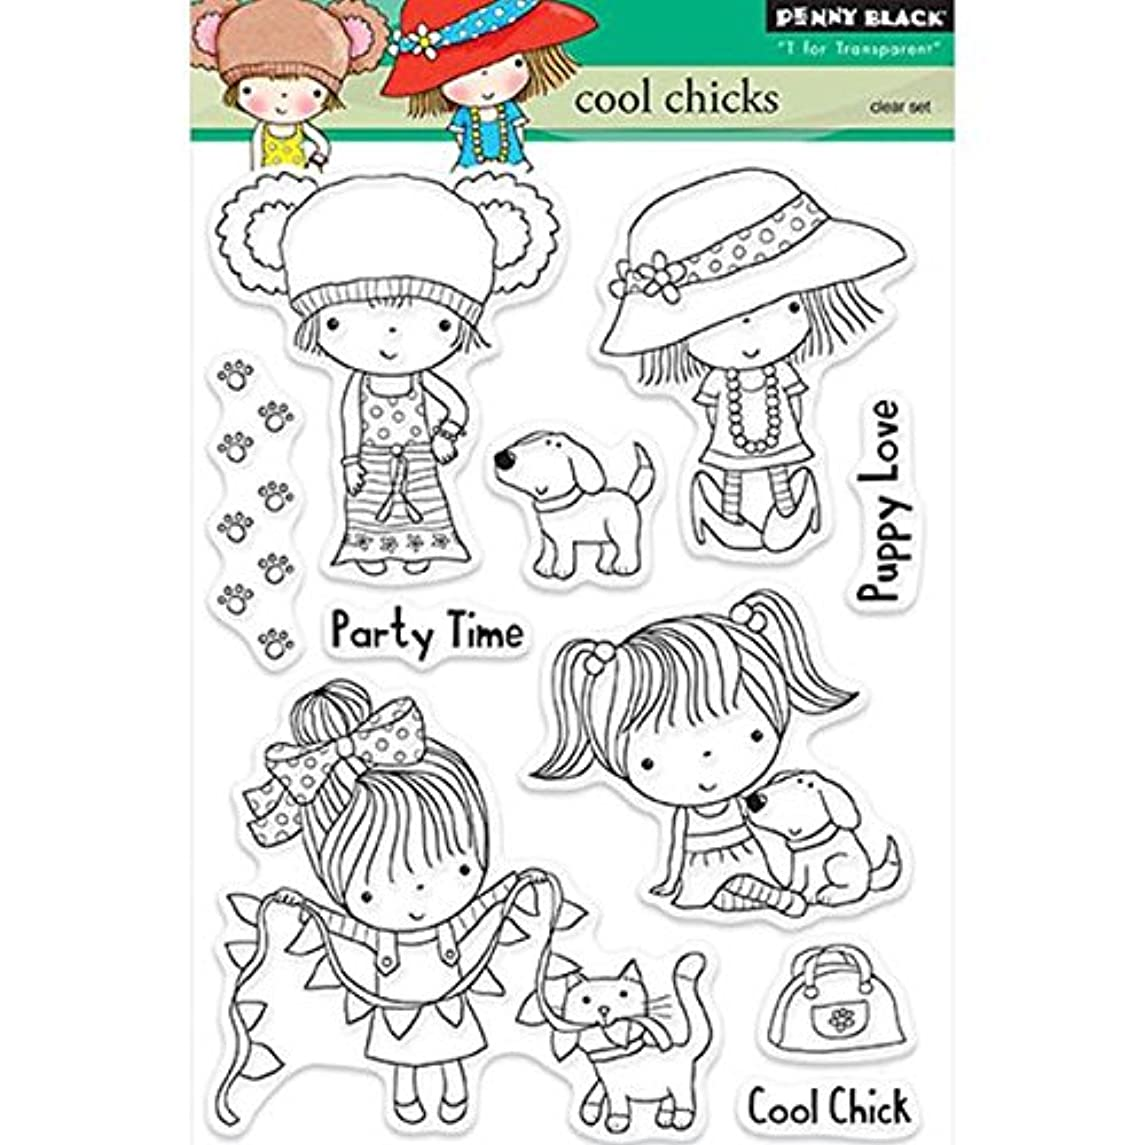 Penny Black 30-231 Cool Chicks Decorative Stamp